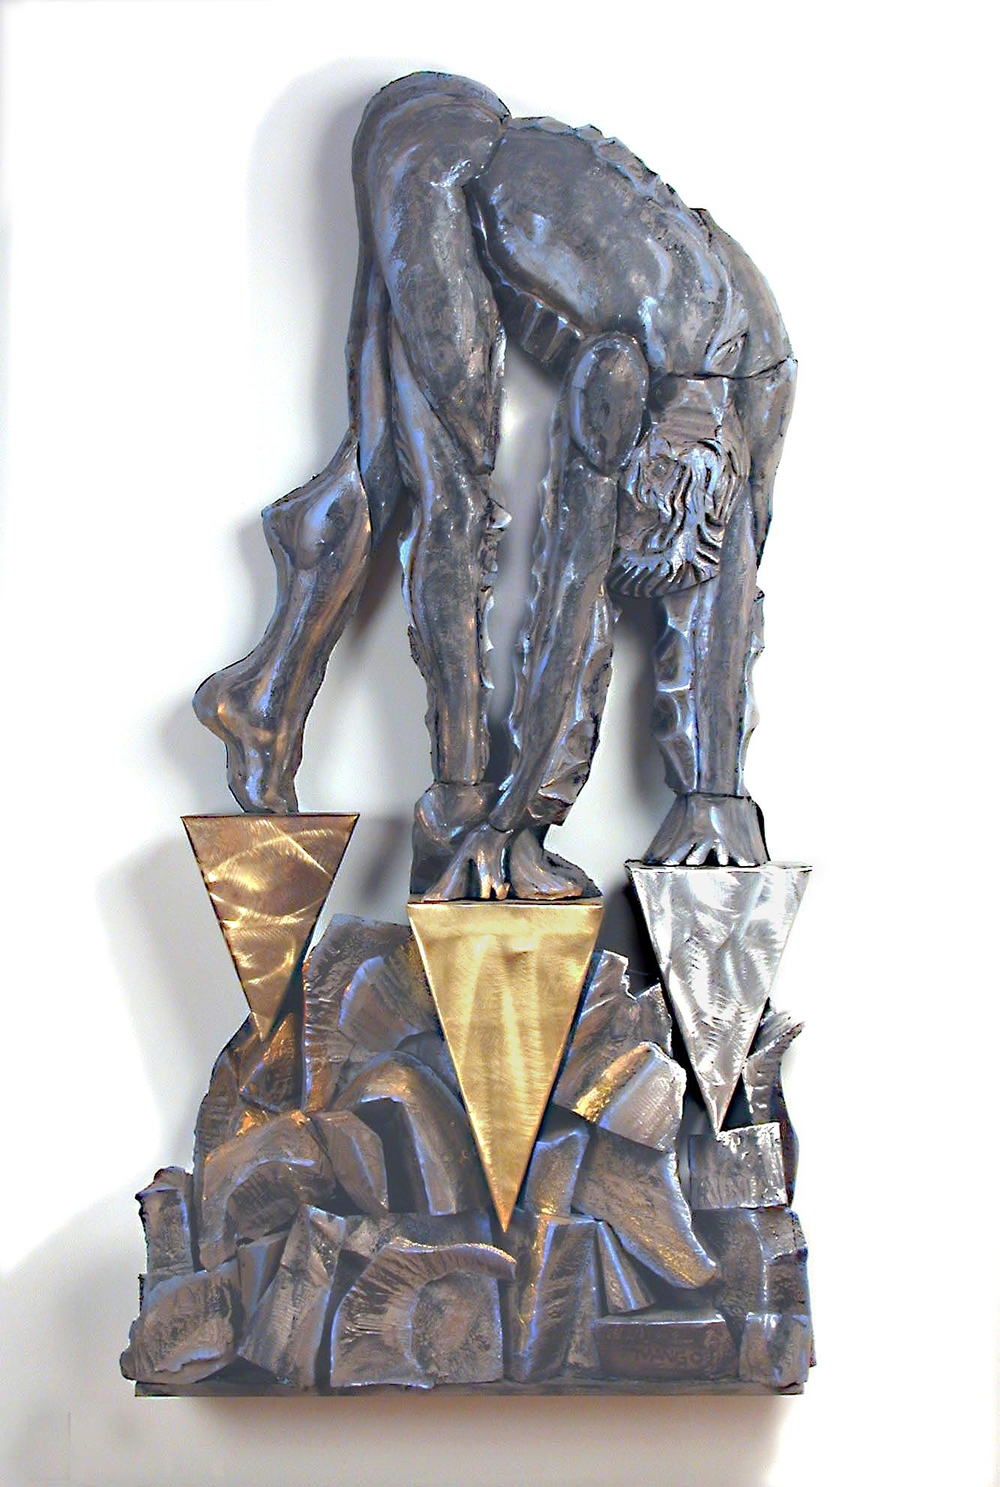 80 x 40 x 10 Inches    Oil on Canvas Over Sculpted Foam and Metals    2003